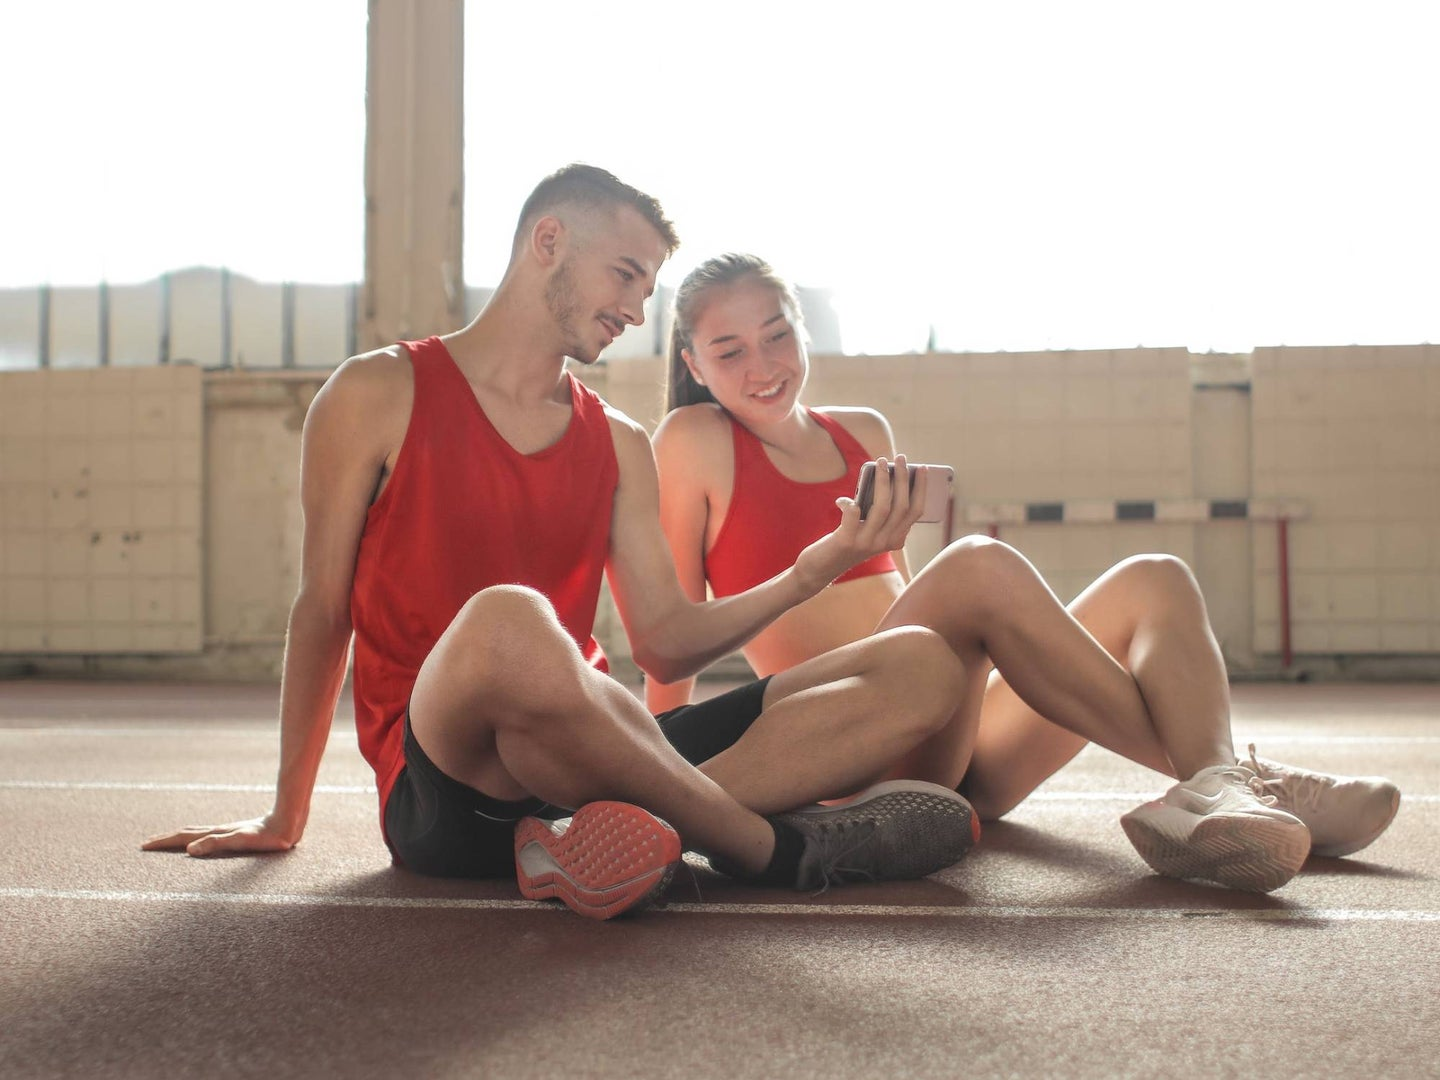 People looking at smartphone and working out